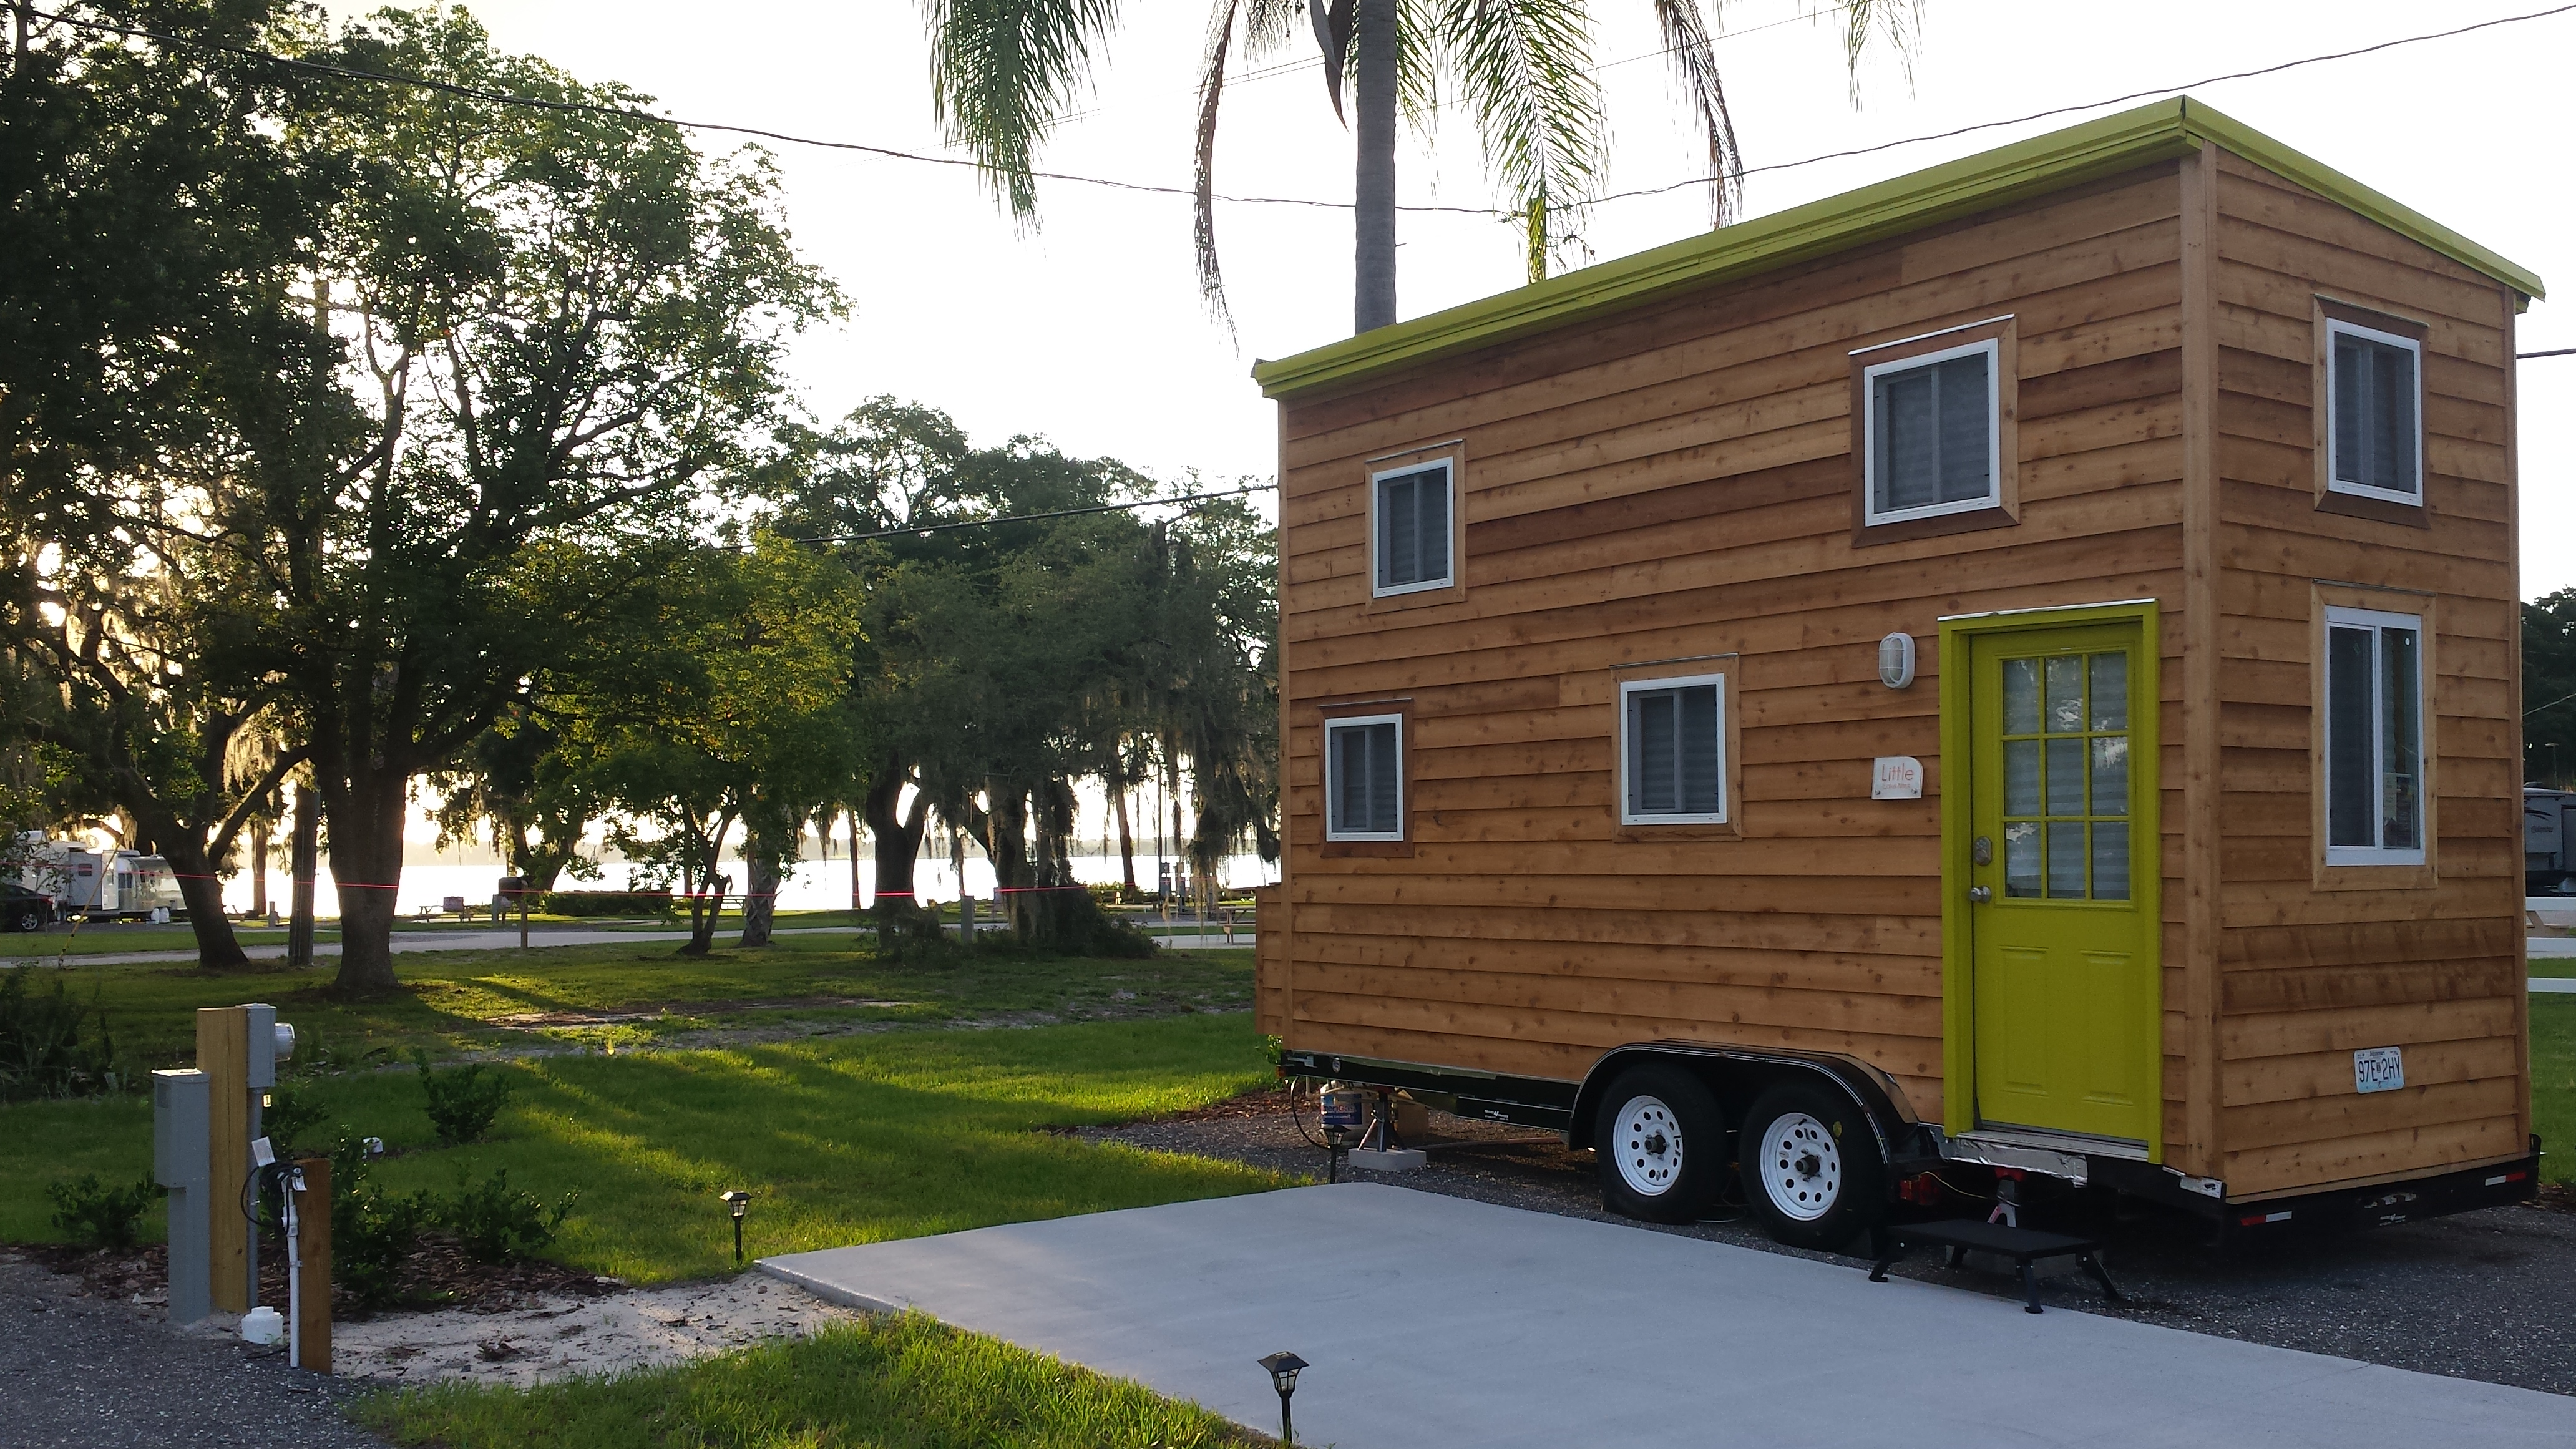 The Preserve Is A New 10 Space Tiny House Community In Central Florida Part Of Outpost RV Resort Development On Beautiful 500 Acre Lake Mariana